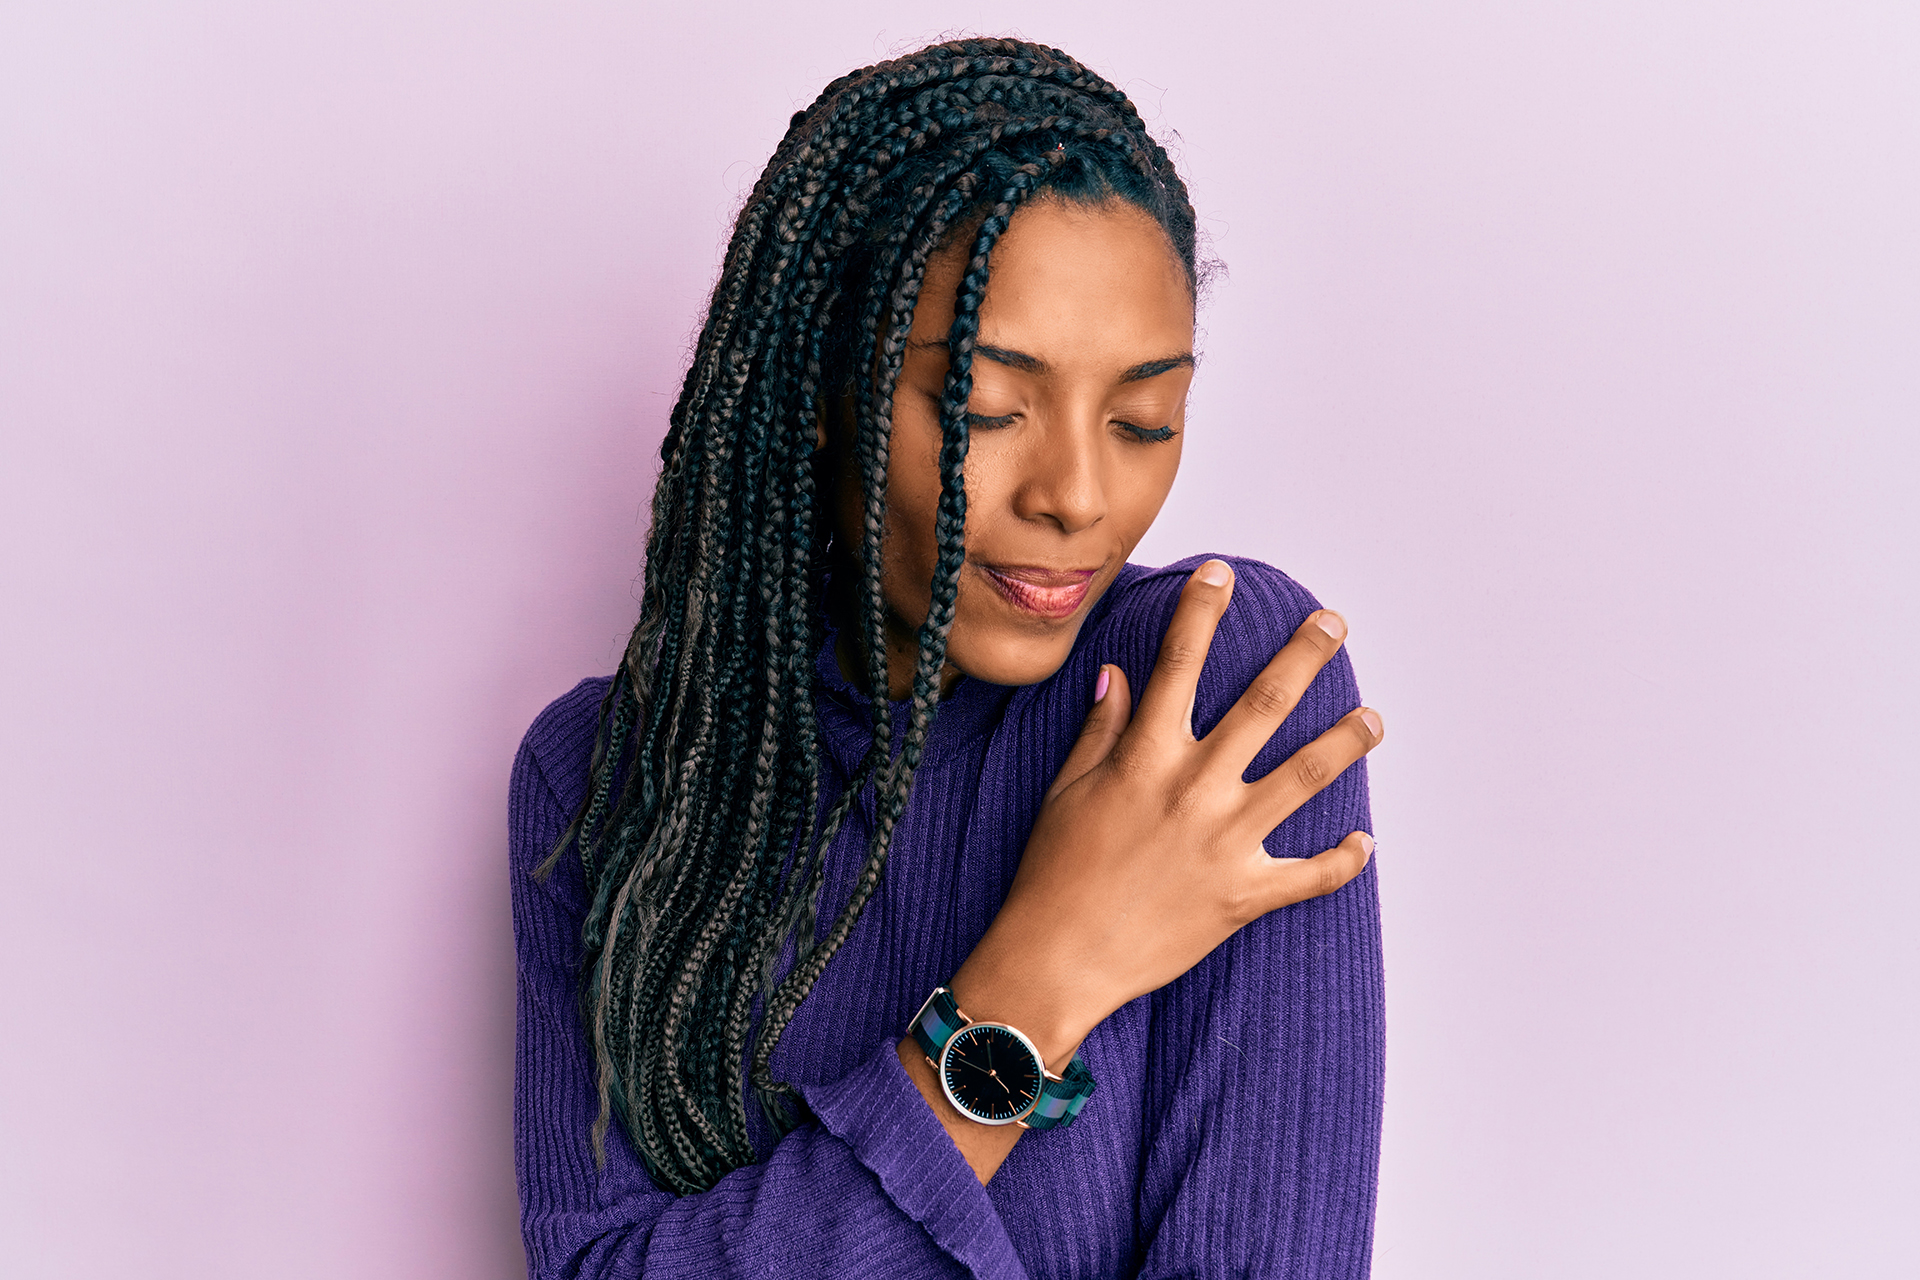 African american woman wearing casual winter sweater hugging oneself happy and positive, smiling confident. self love and self care